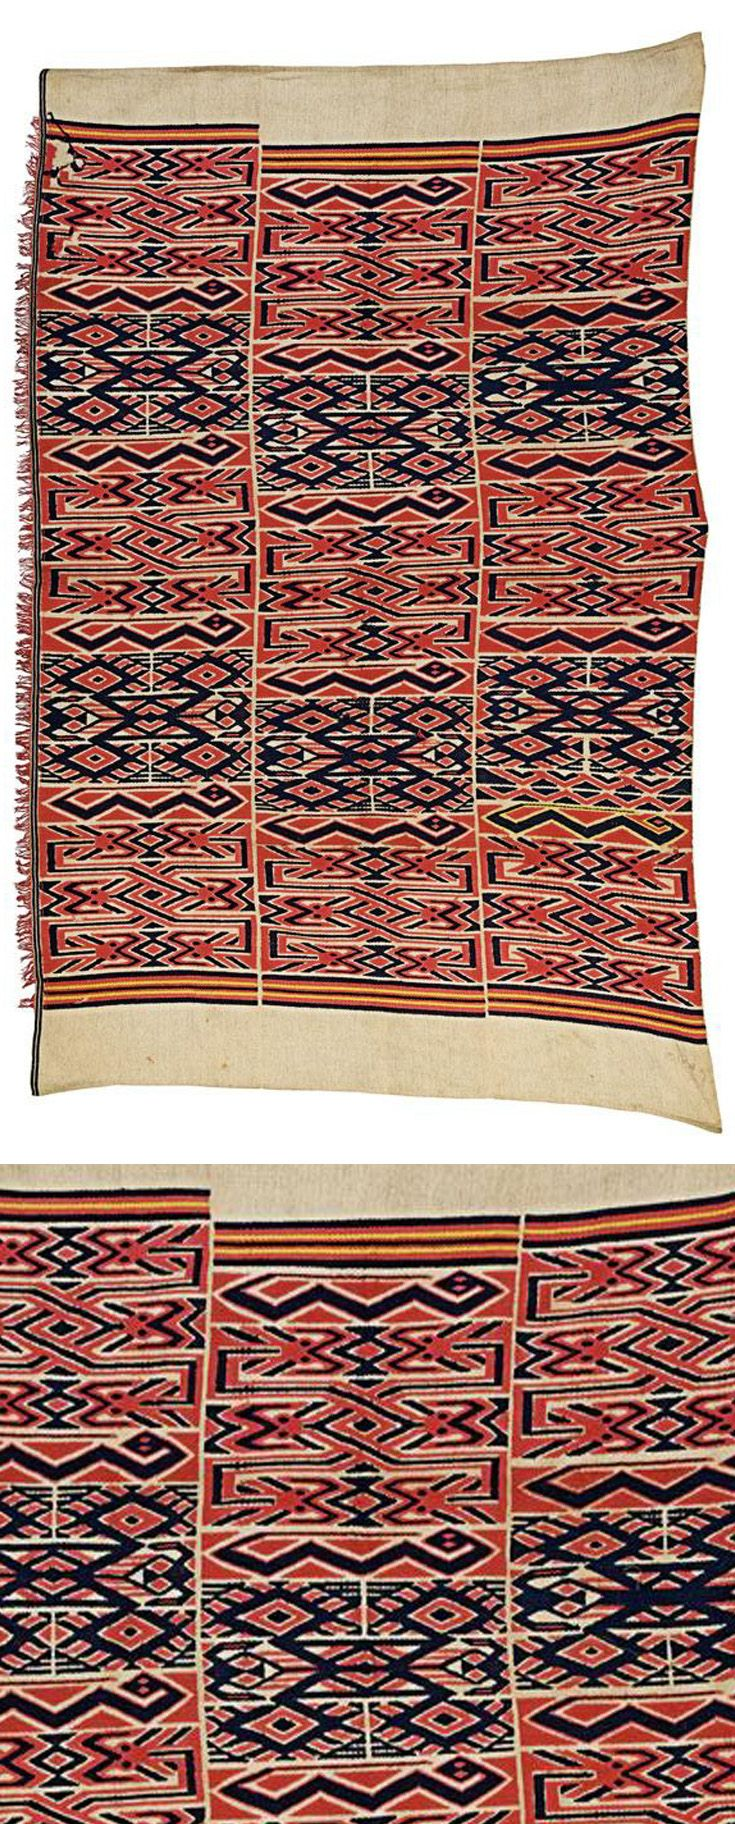 Africa | An Oshugbo society cloth from Nigeria | Cotton; woven in three strips with stylised snakes amongst horizontal geometric patterns in red, yellow and indigo on a cream ground